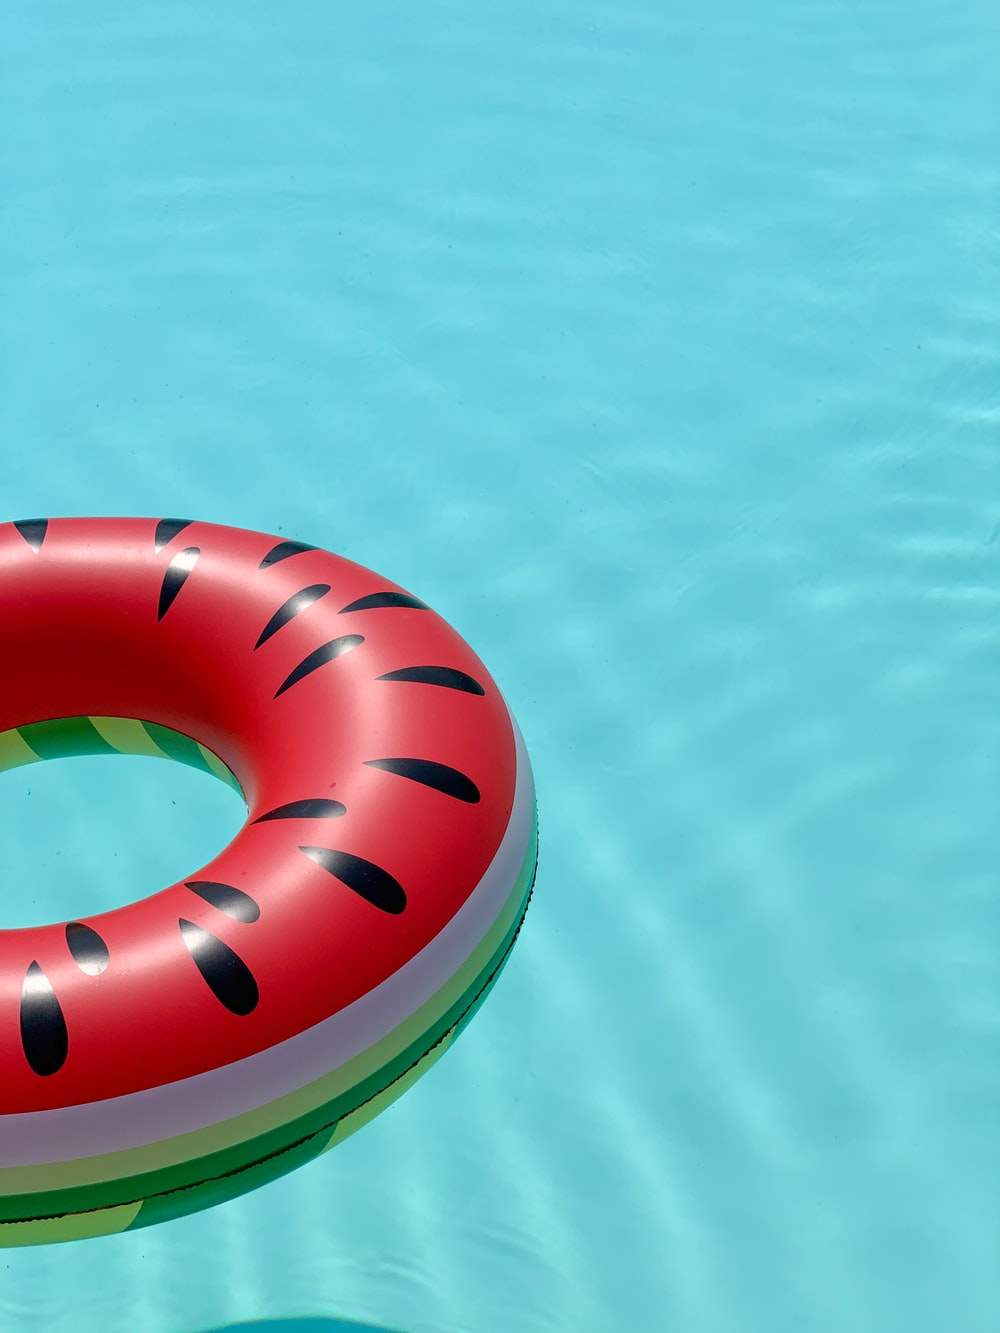 red and green lifebuoy on swimming pool